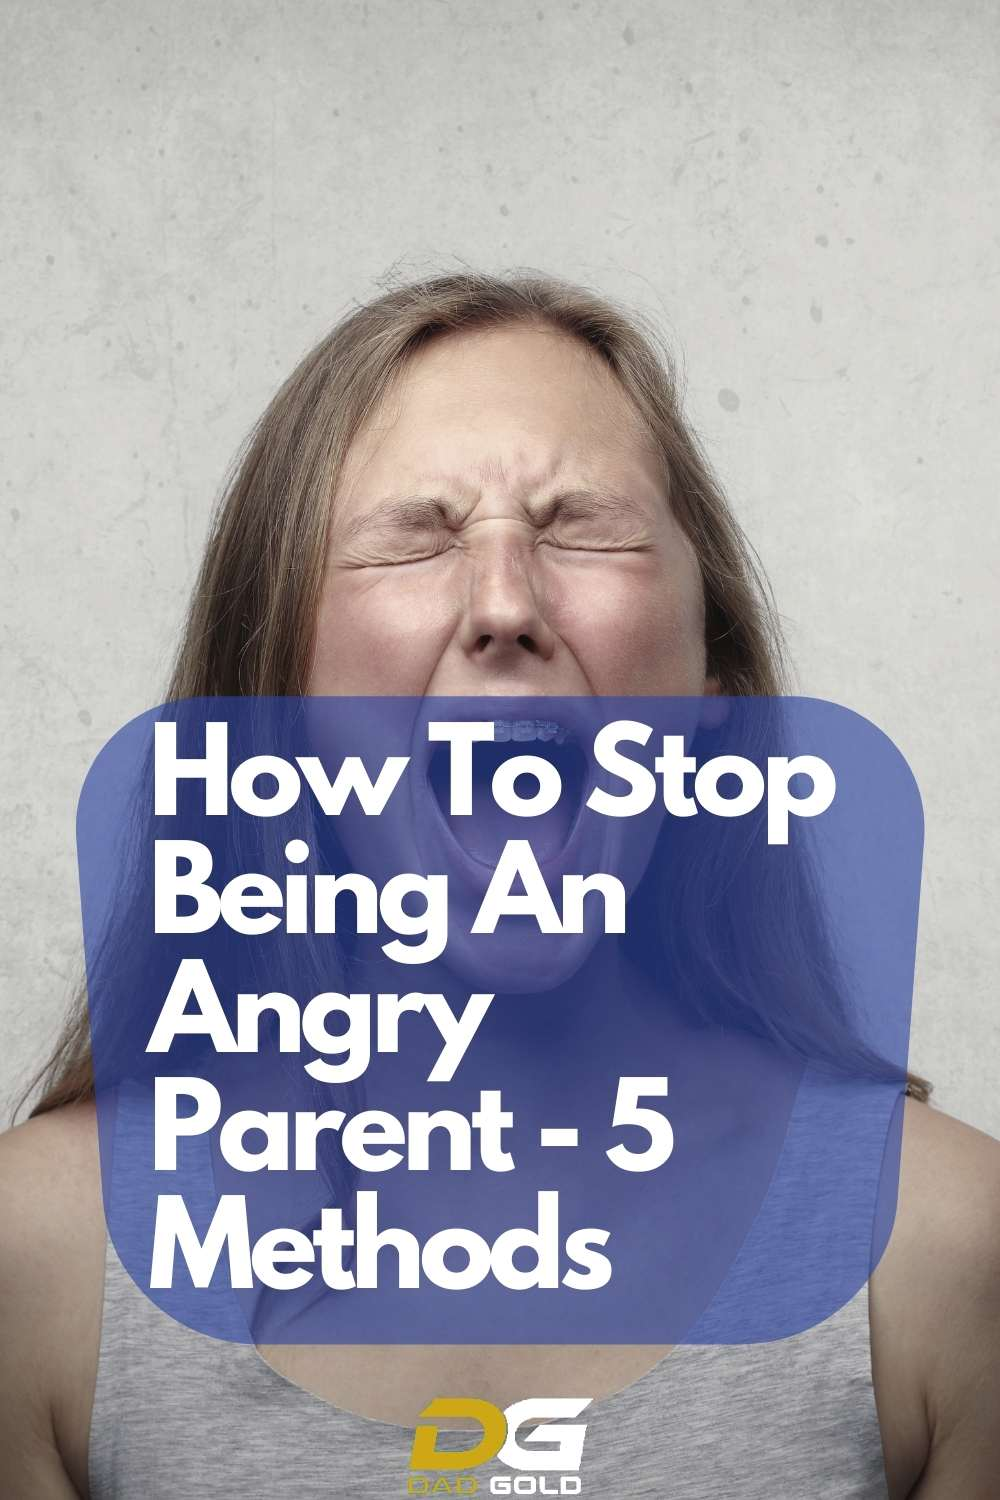 How To Stop Being An Angry Parent - 5 Methods Parenting Tips